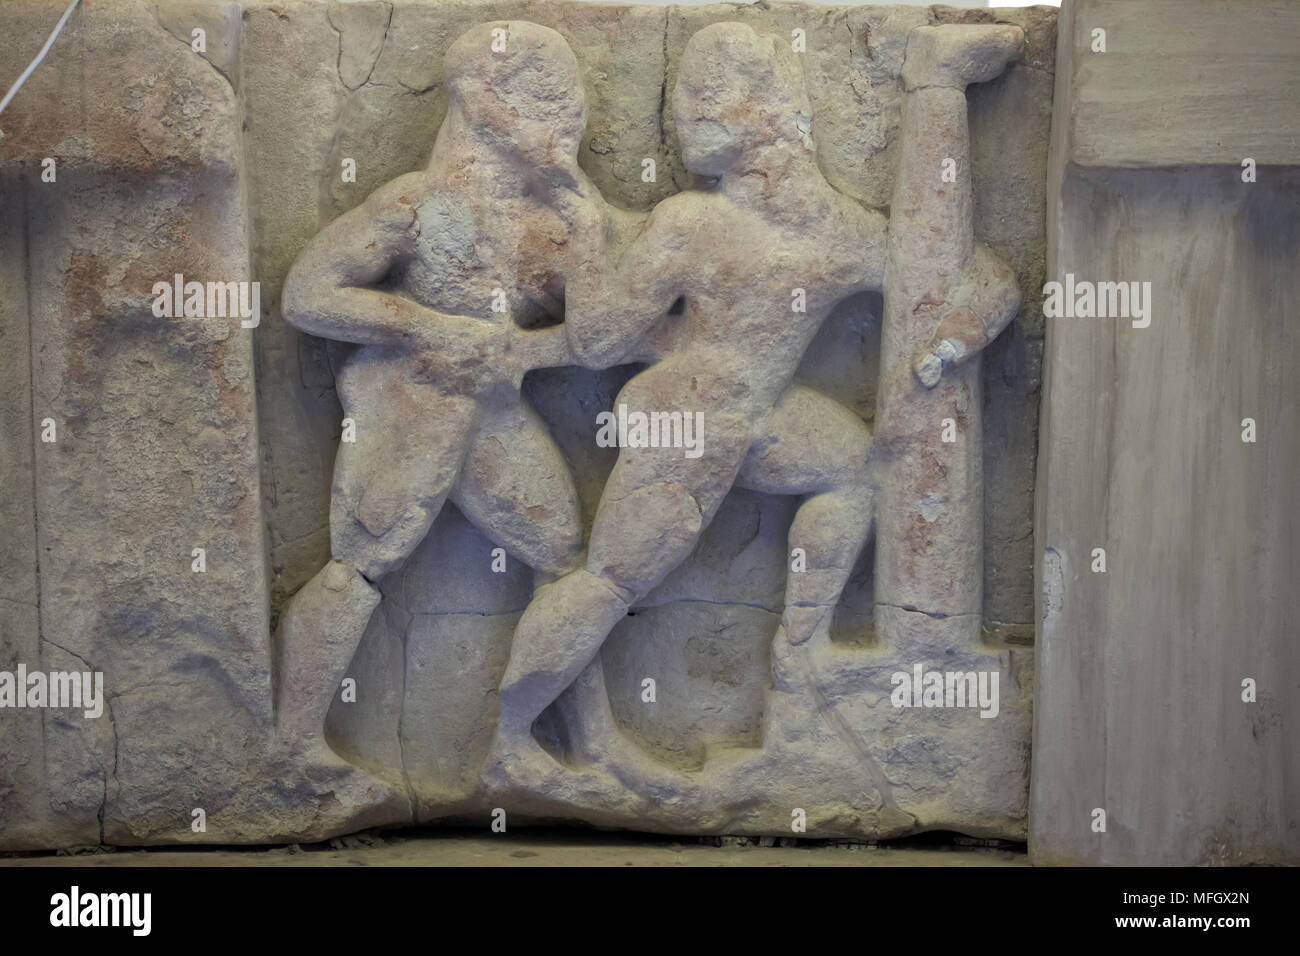 Orestes kills Aegisthus. Archaic sandstone metope from the Heraion (First Temple of Hera) at Foce del Sele dated from the middle of the 6th century BC on display in the Paestum Archaeological Museum (Museo archeologico di Paestum) in Paestum, Campania, Italy. - Stock Image